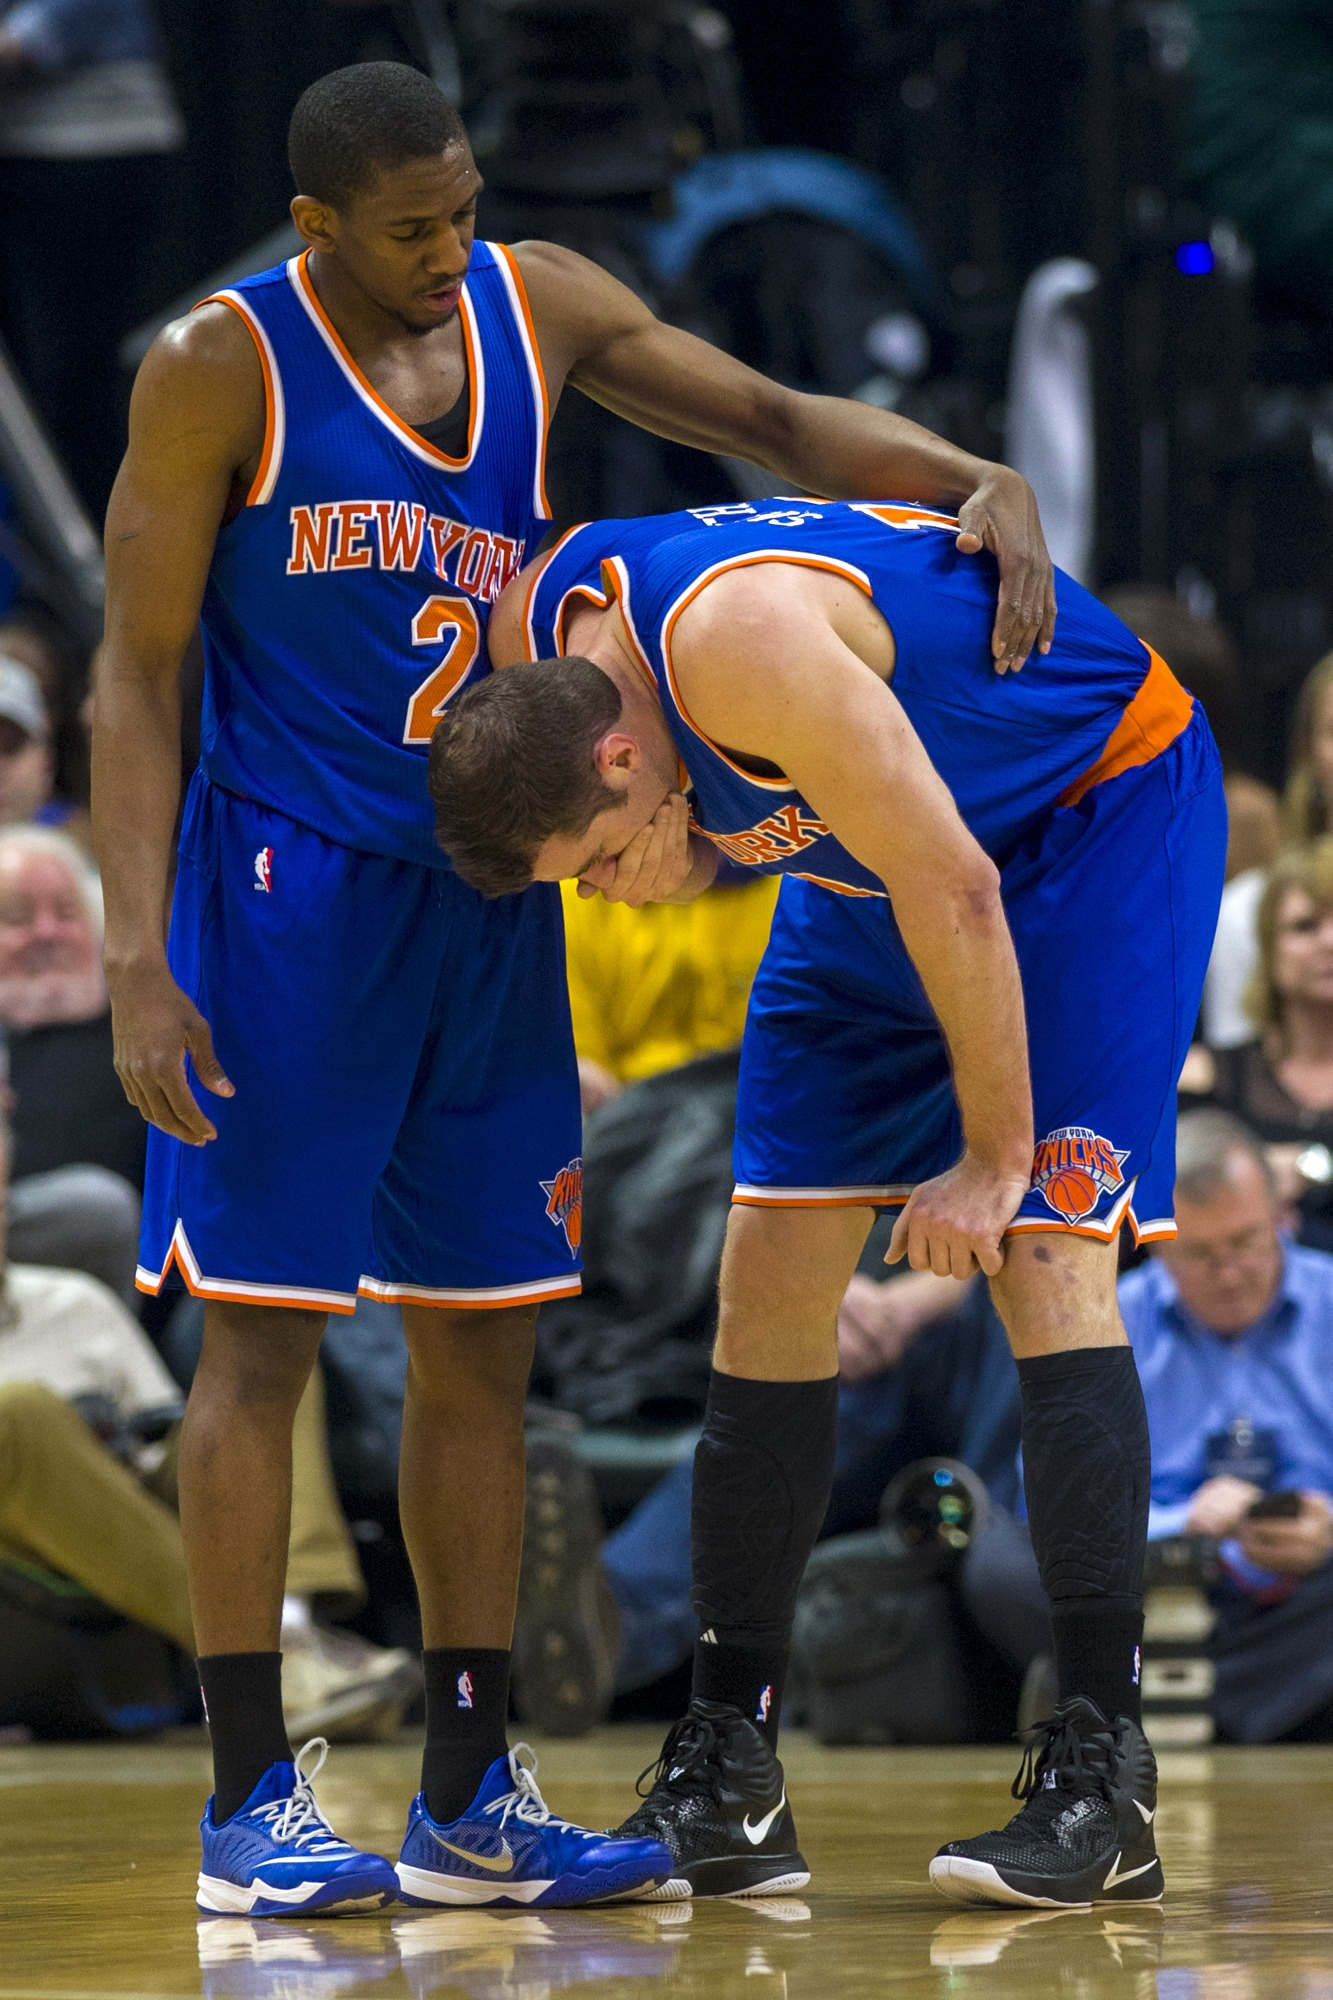 Jason Smith potentially fighting back vomit after watching an atrocious Knicks play.